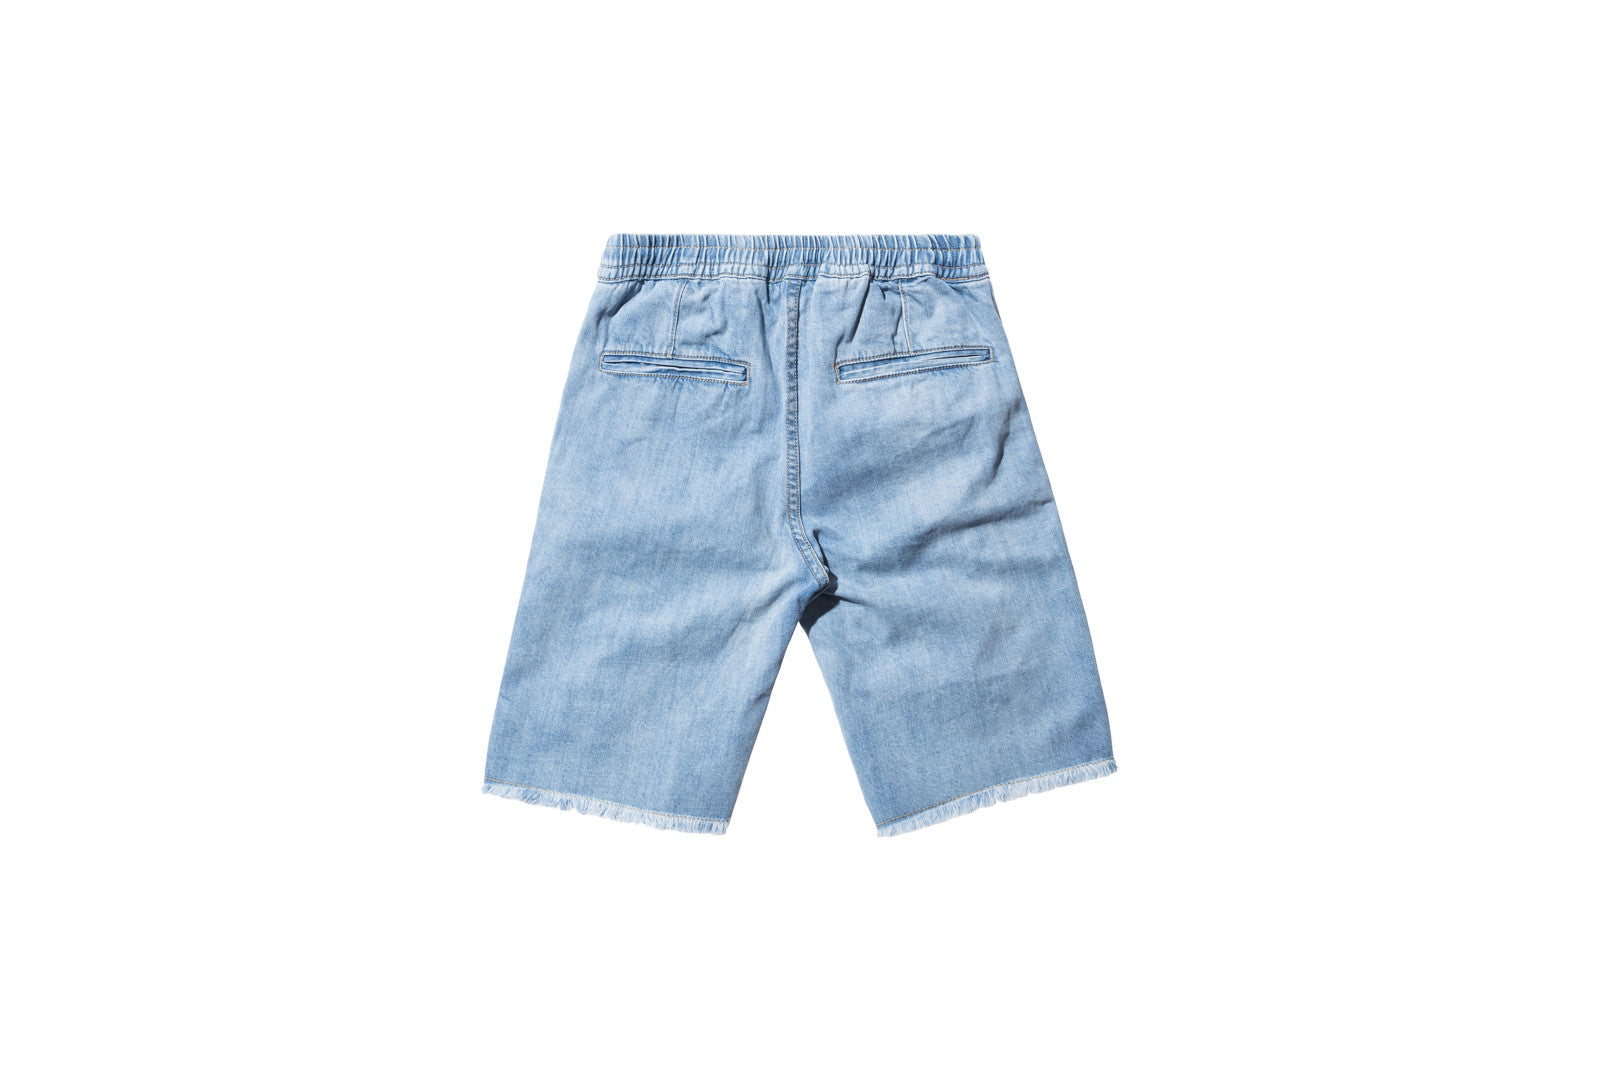 Stampd Distressed Denim Short - Blue